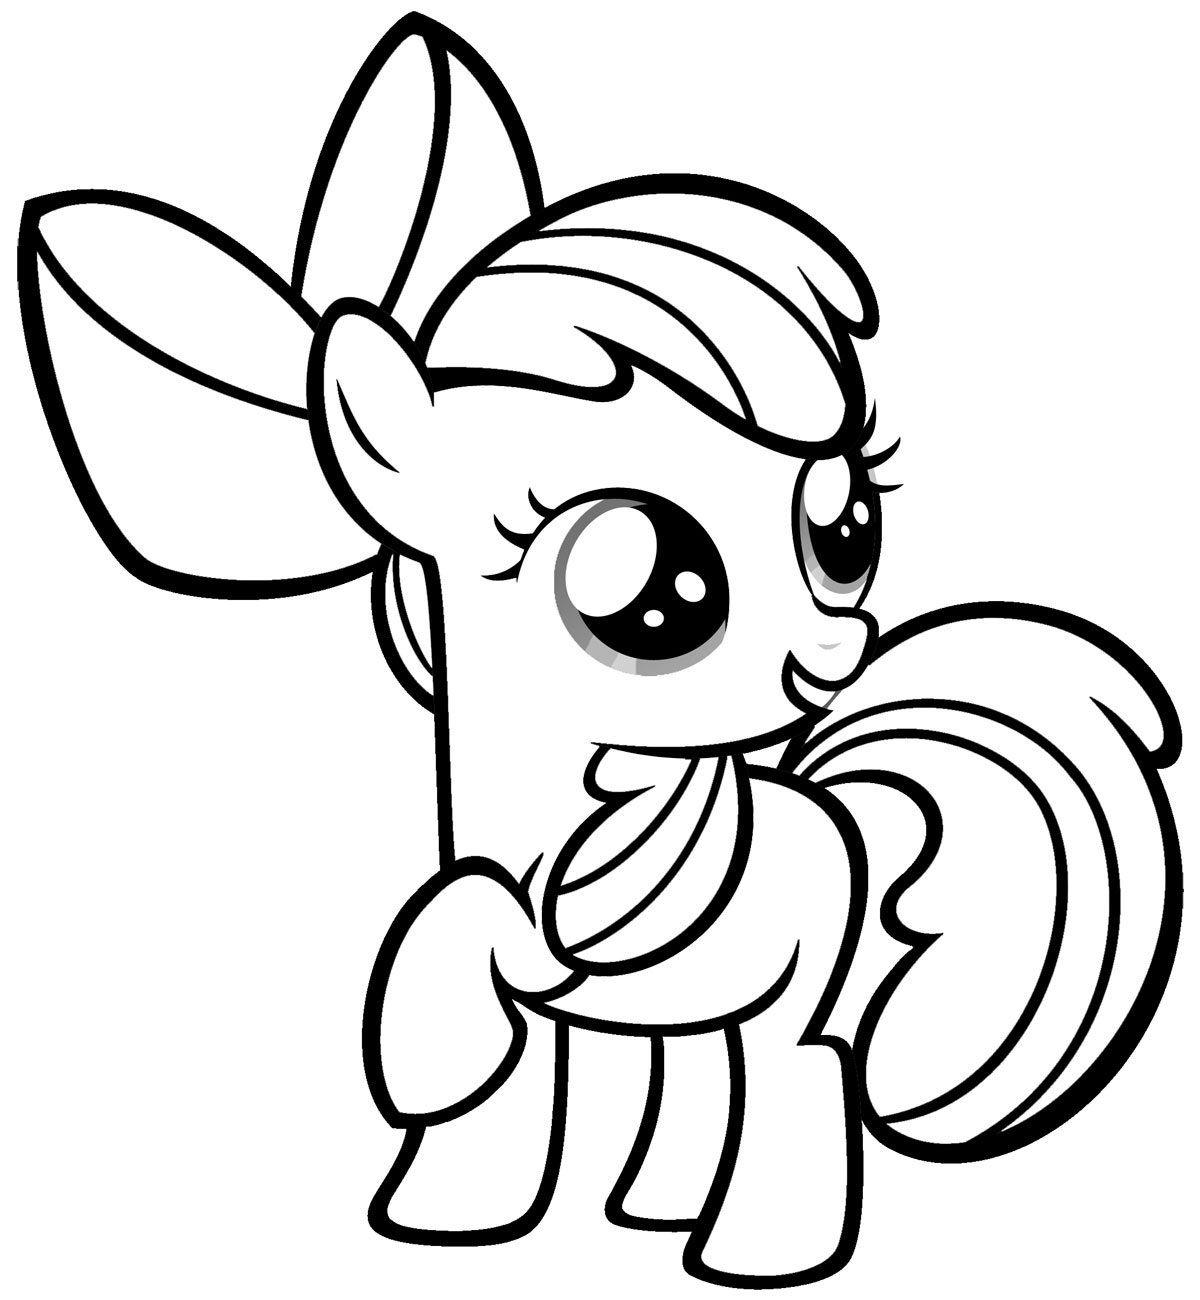 1200x1300 Free Printable My Little Pony Coloring Pages For Kids Colorear